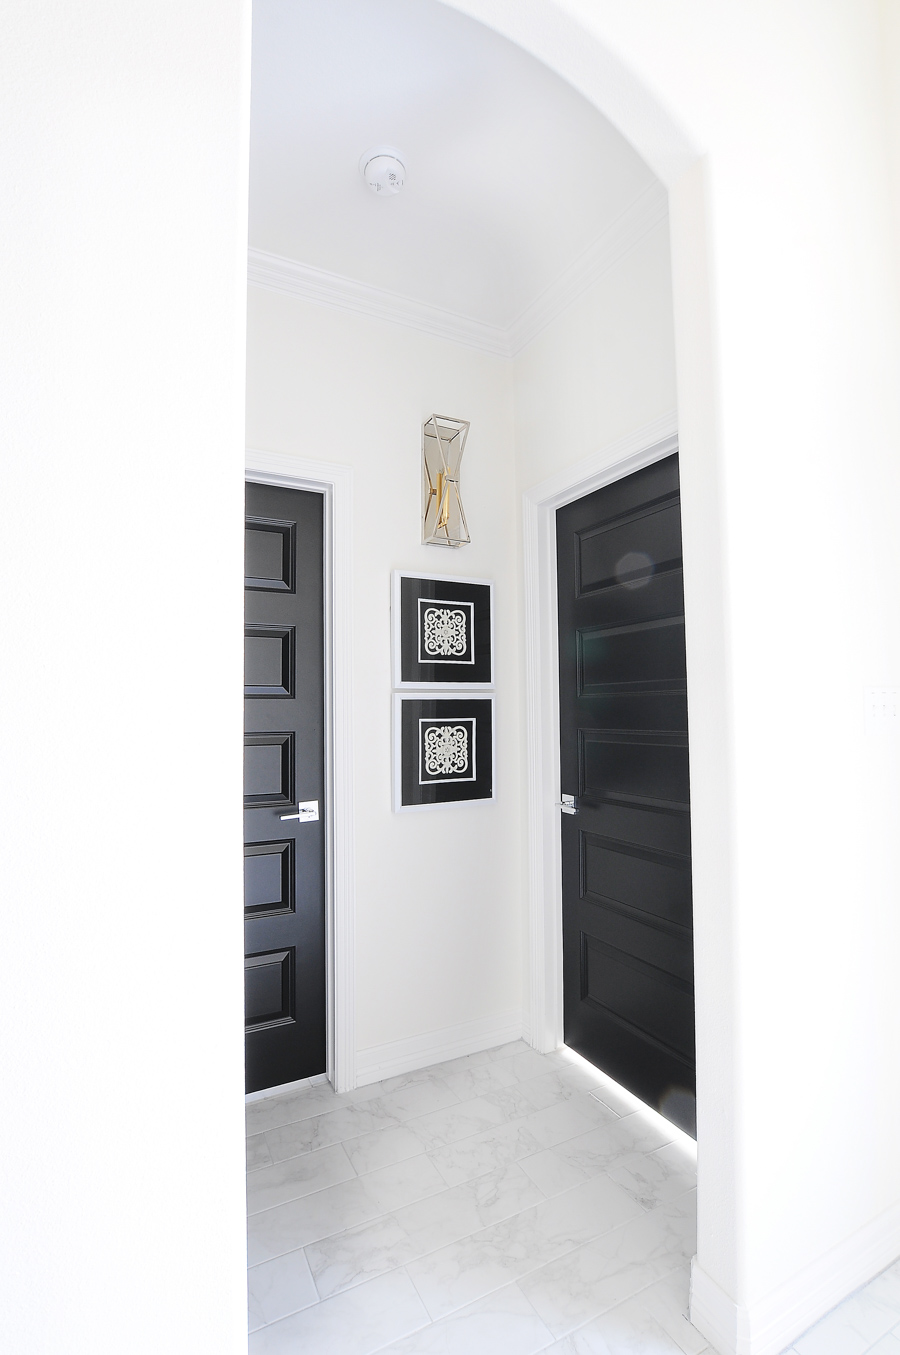 Black interior doors in a gorgeous satin finish look sleek when paired with minimal decor and alabaster white walls.